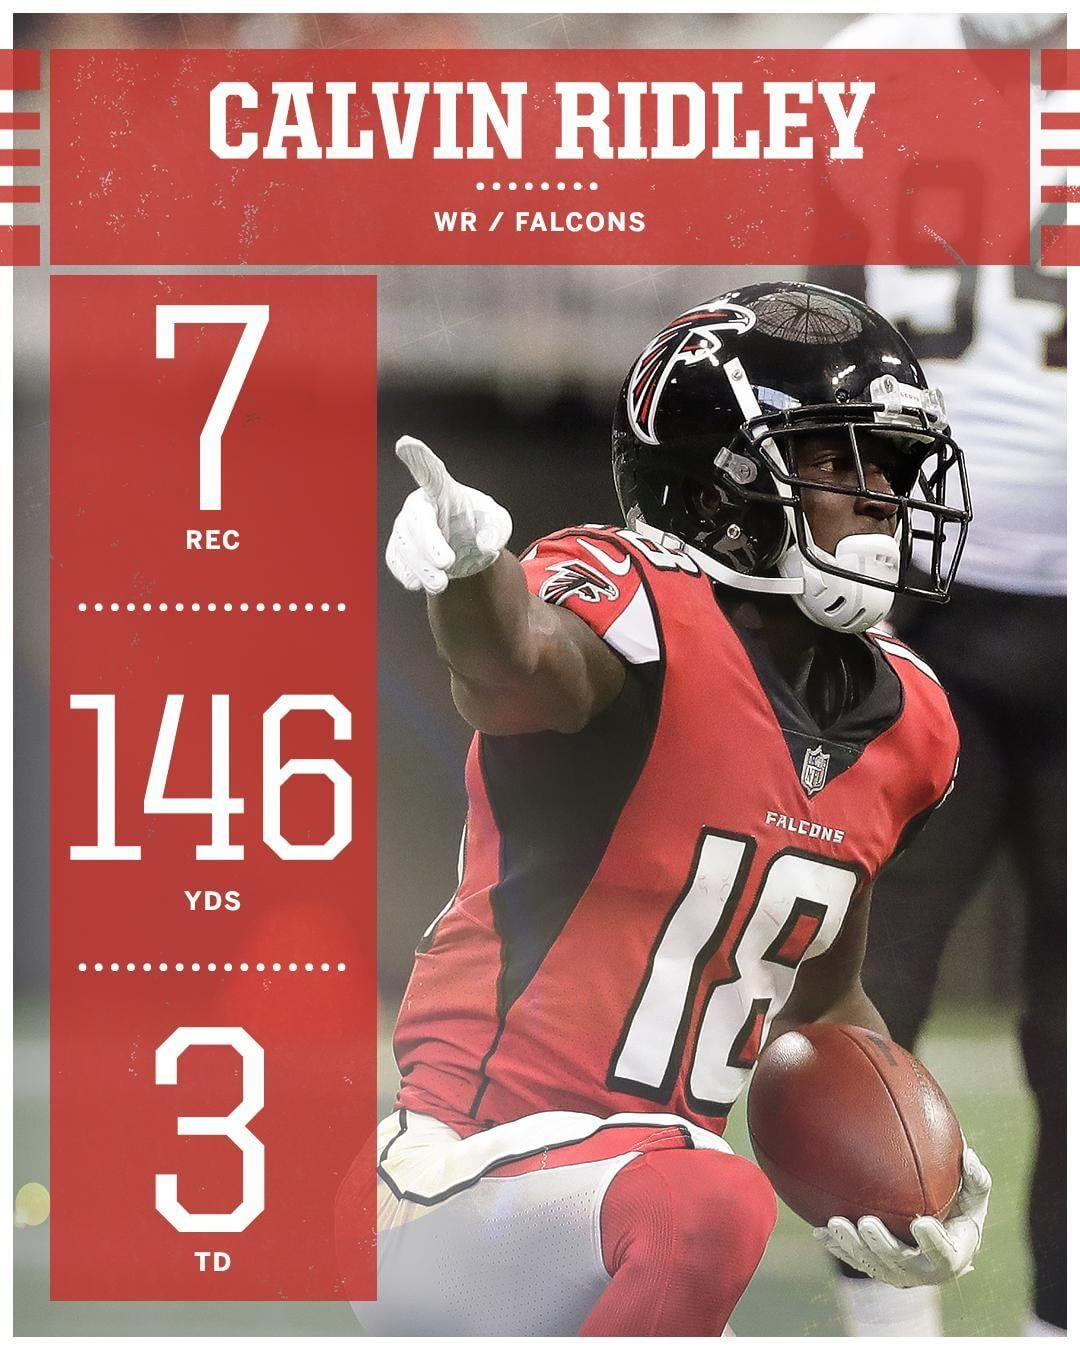 Nfl On Espn On Instagram Monster Day For Calvin Ridley Atlanta Falcons Football Atlanta Falcons Wallpaper Atlanta Falcons